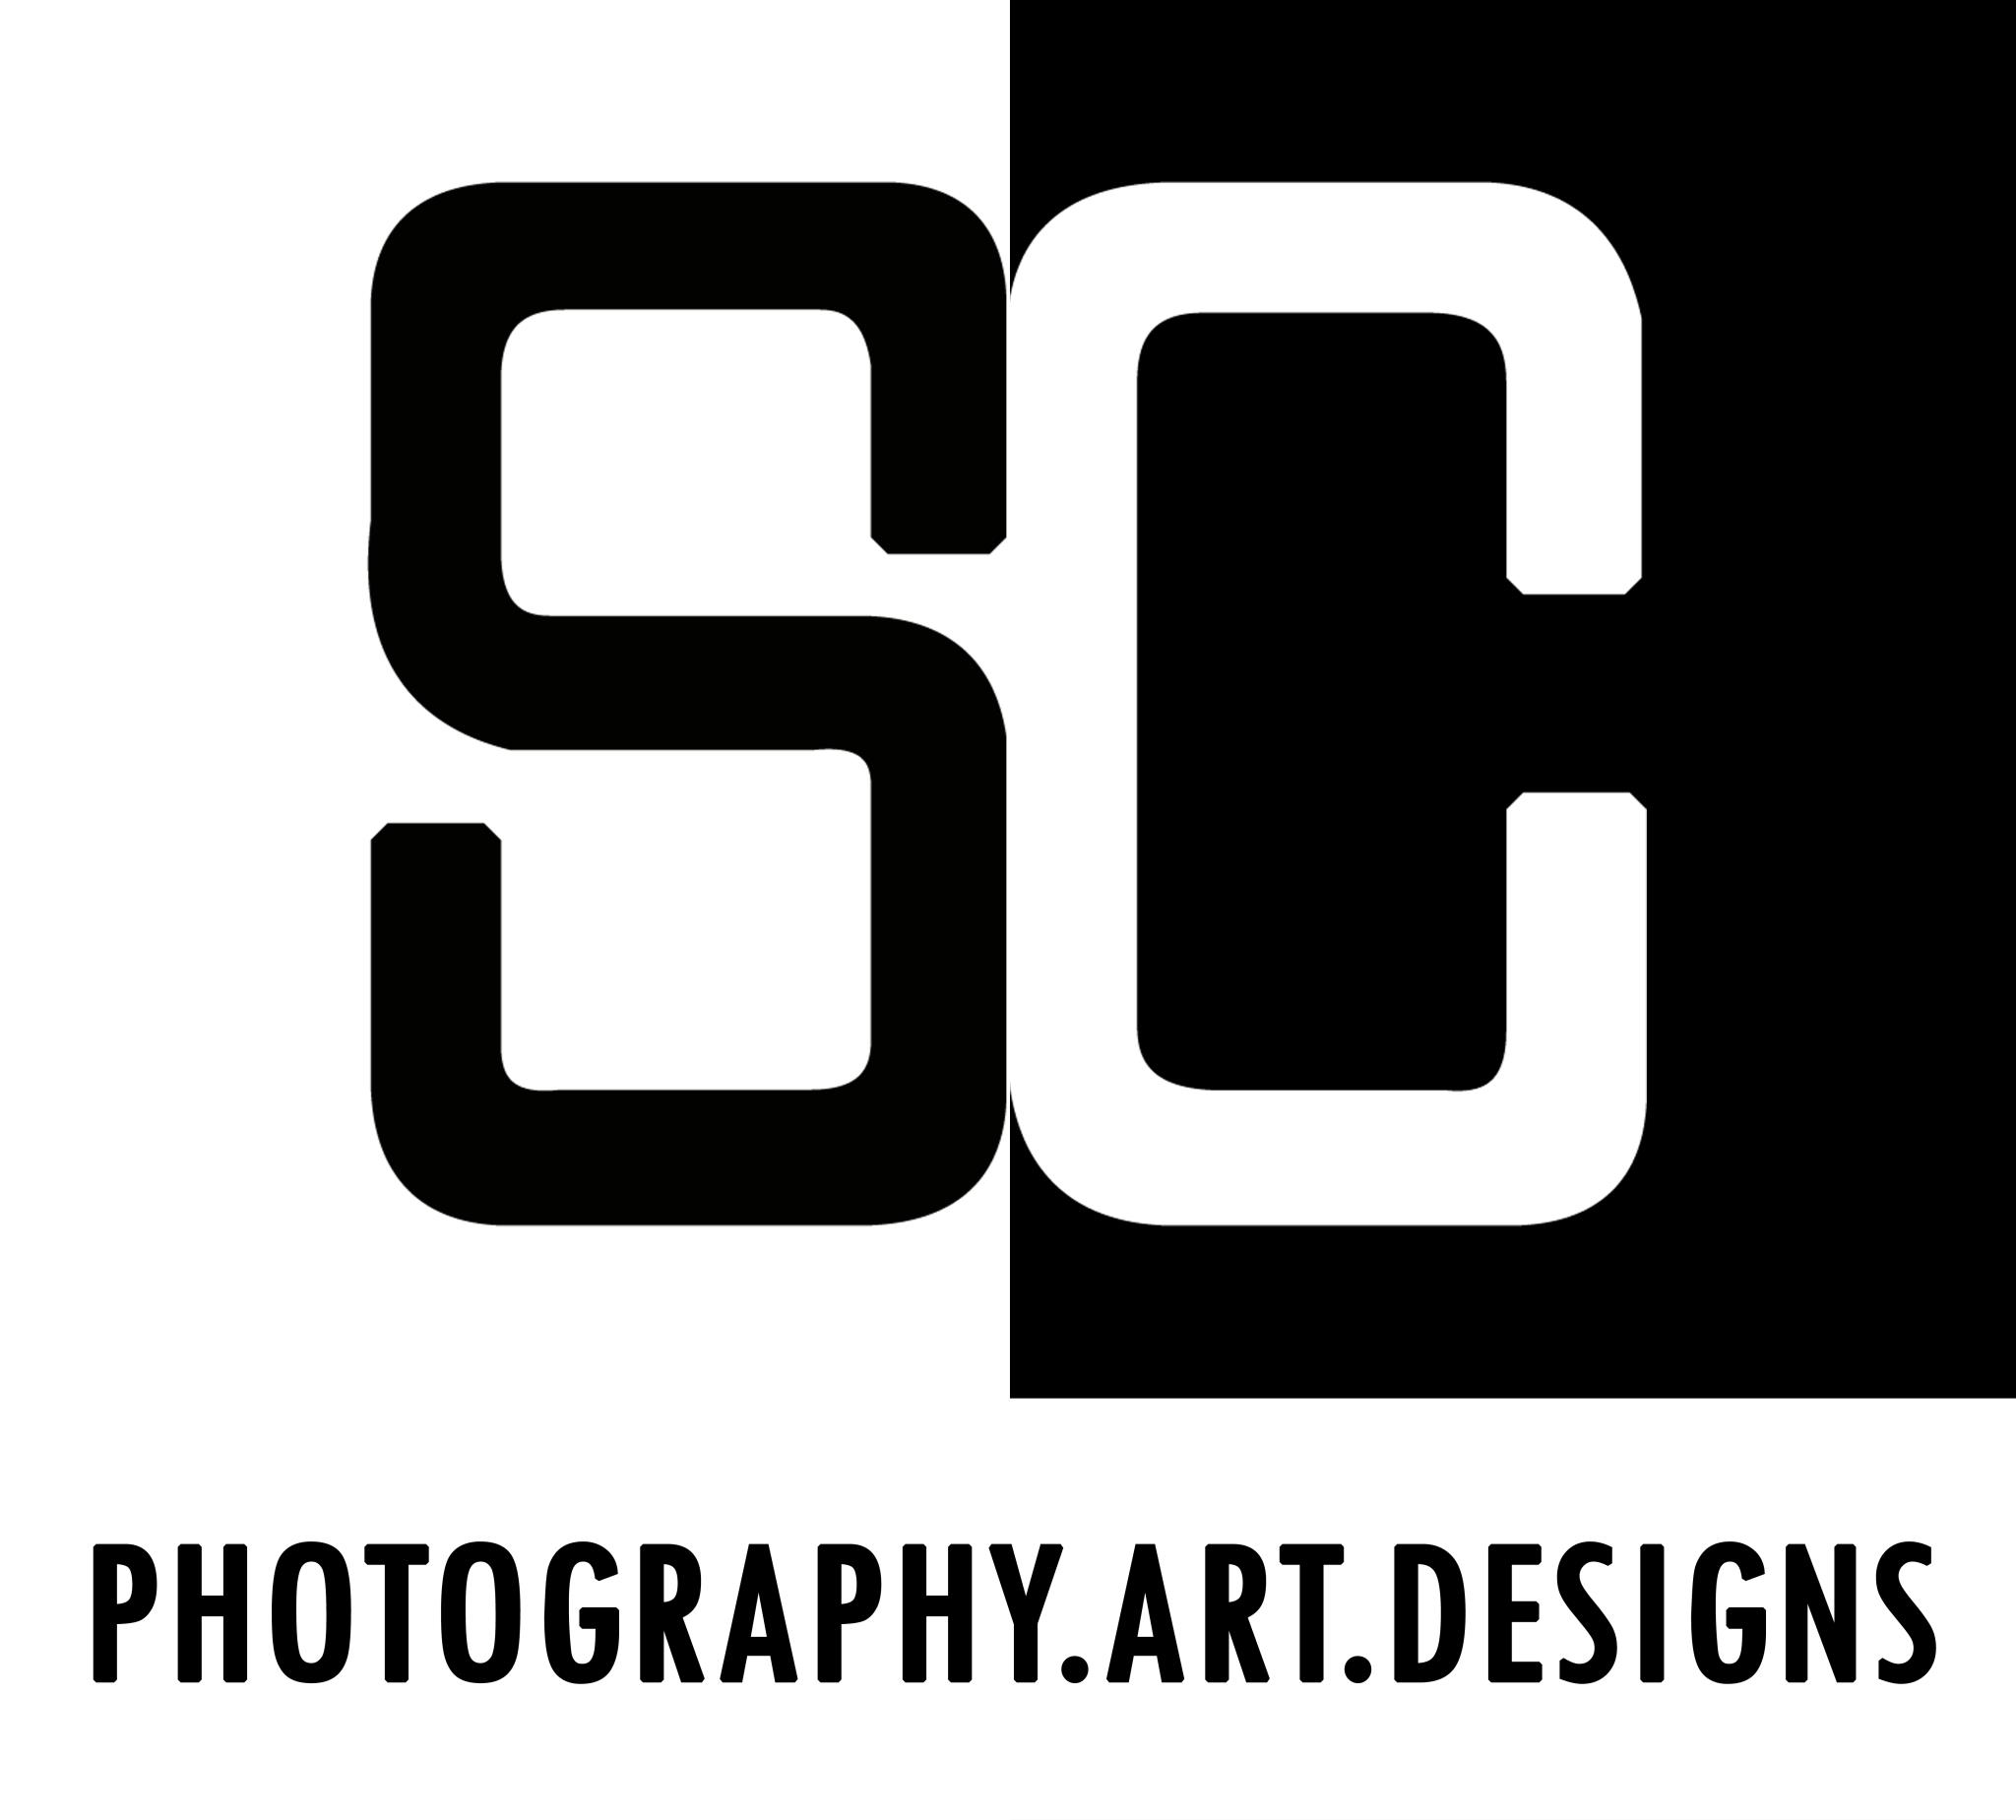 Shaukh Creations Photography Art Designs - Facebook